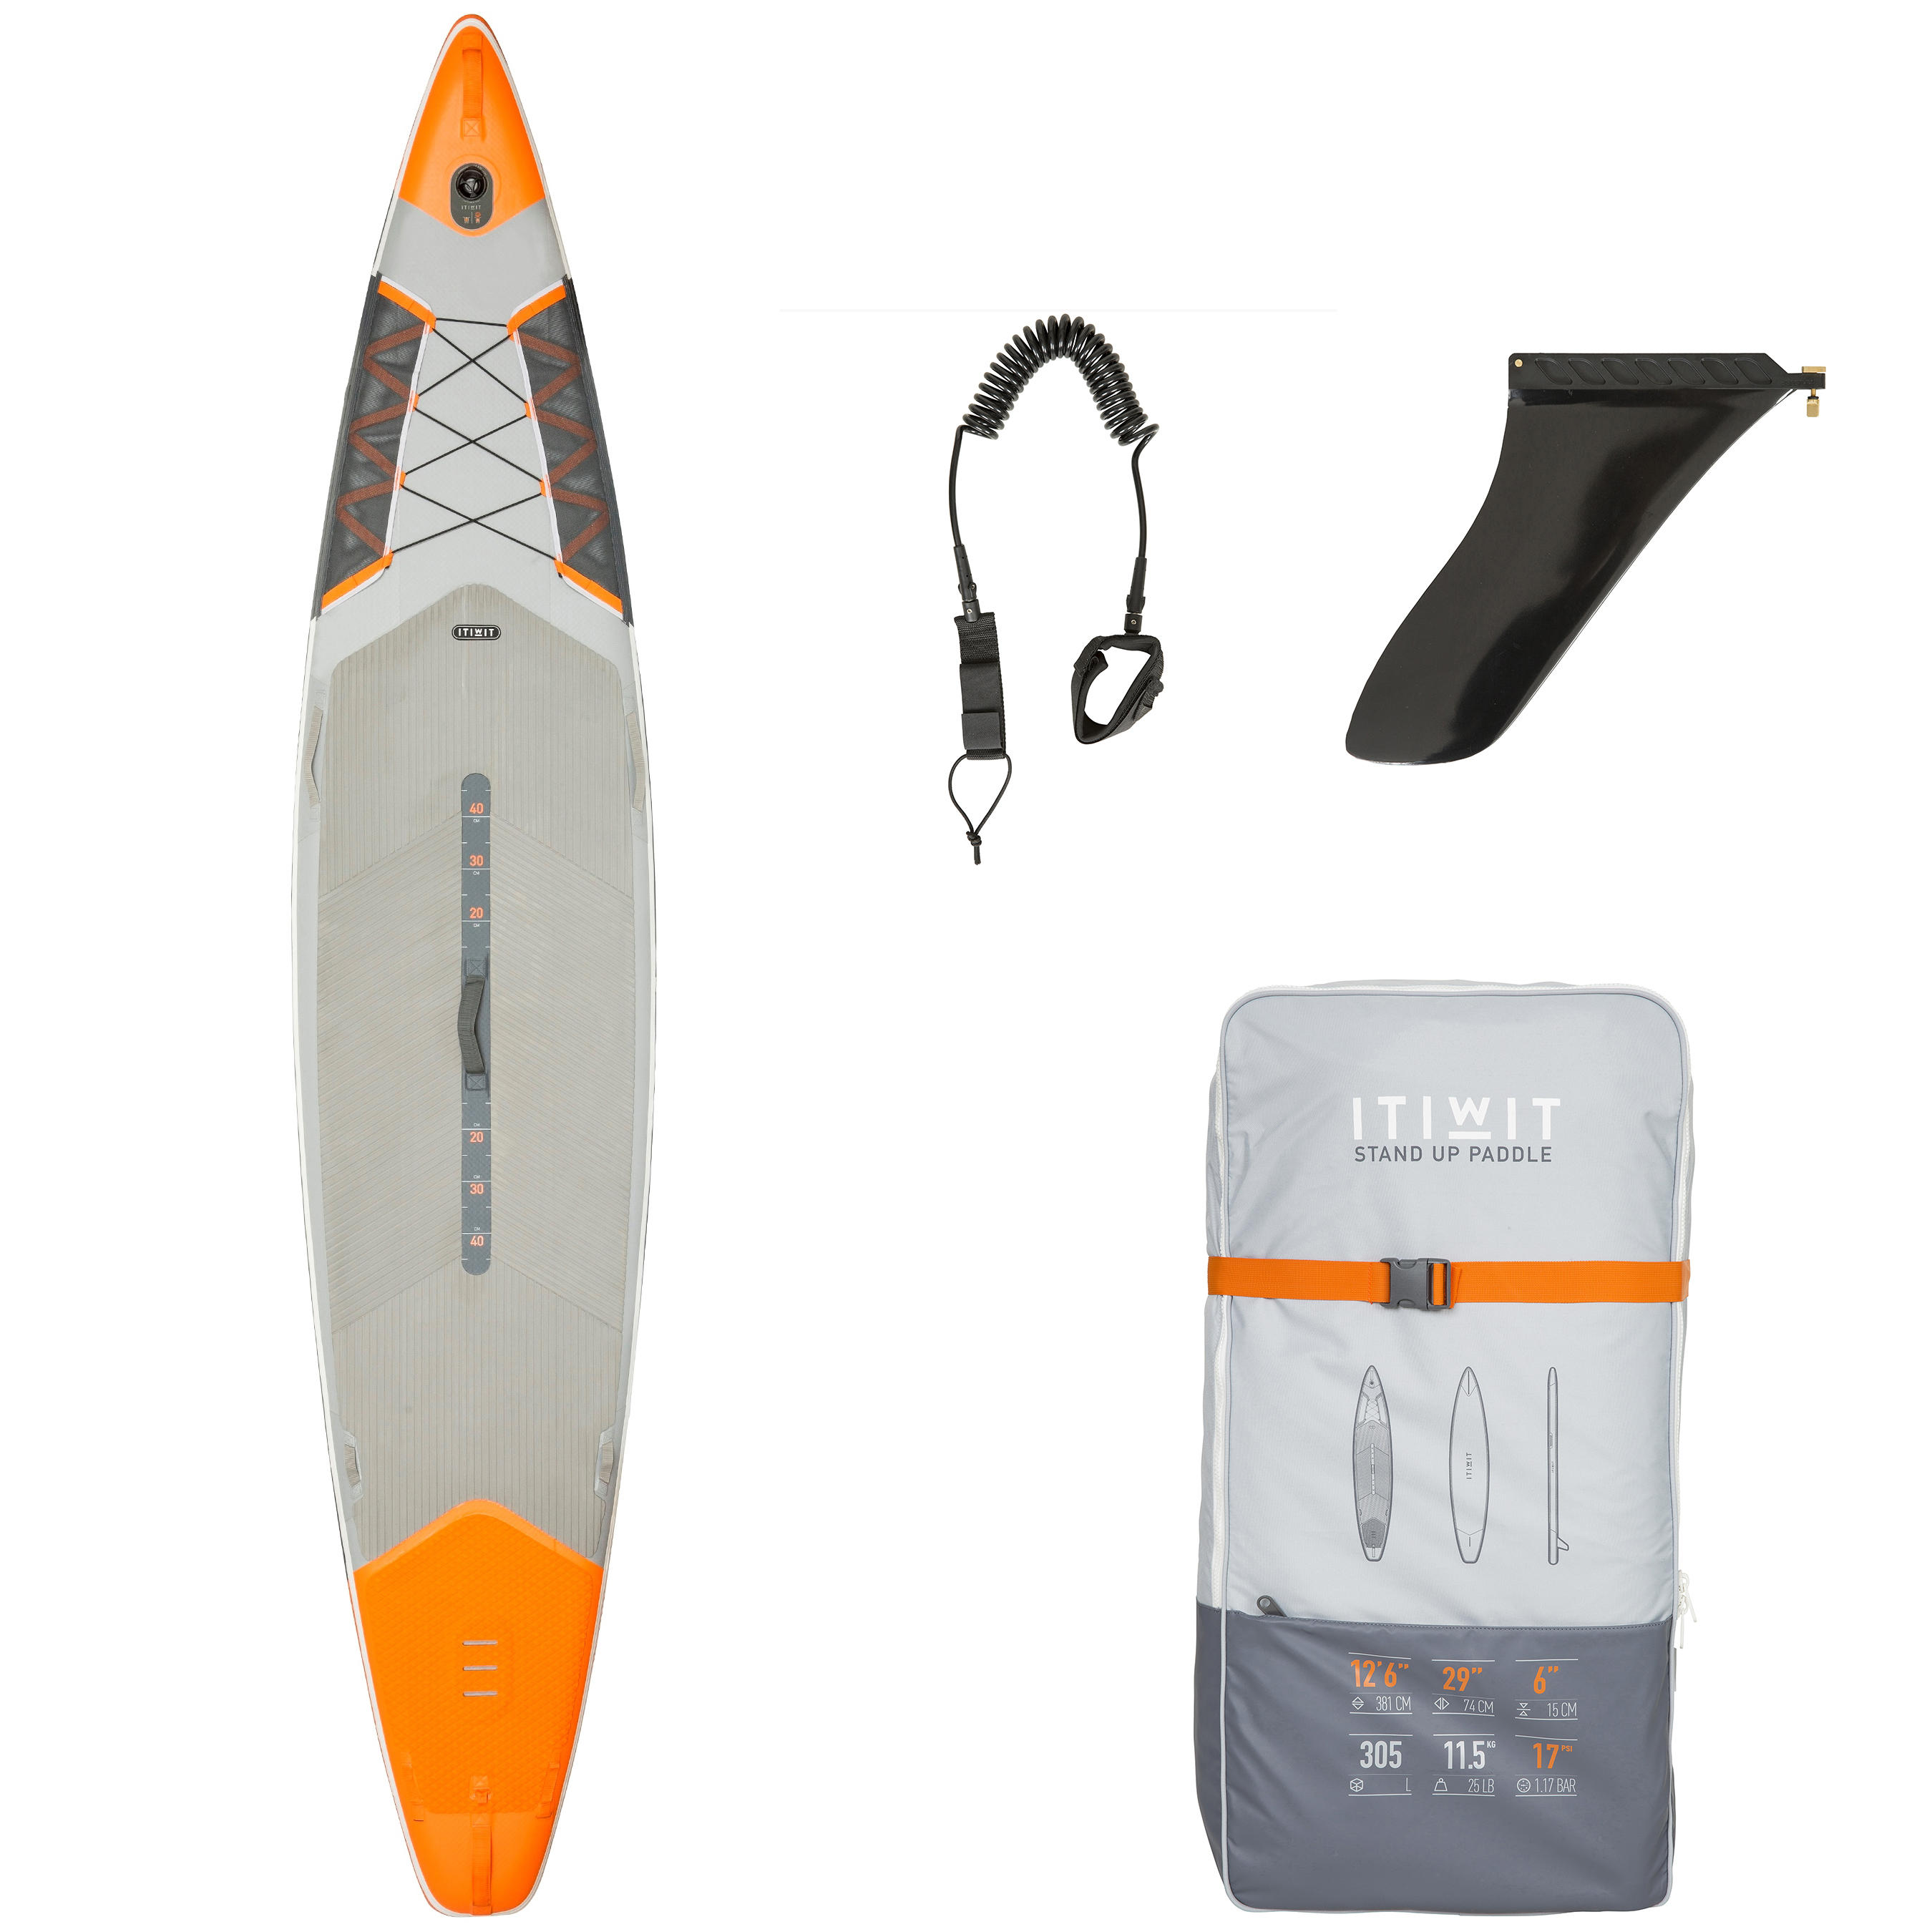 sup-itiwit-gonflable-randonnee-500-126-29